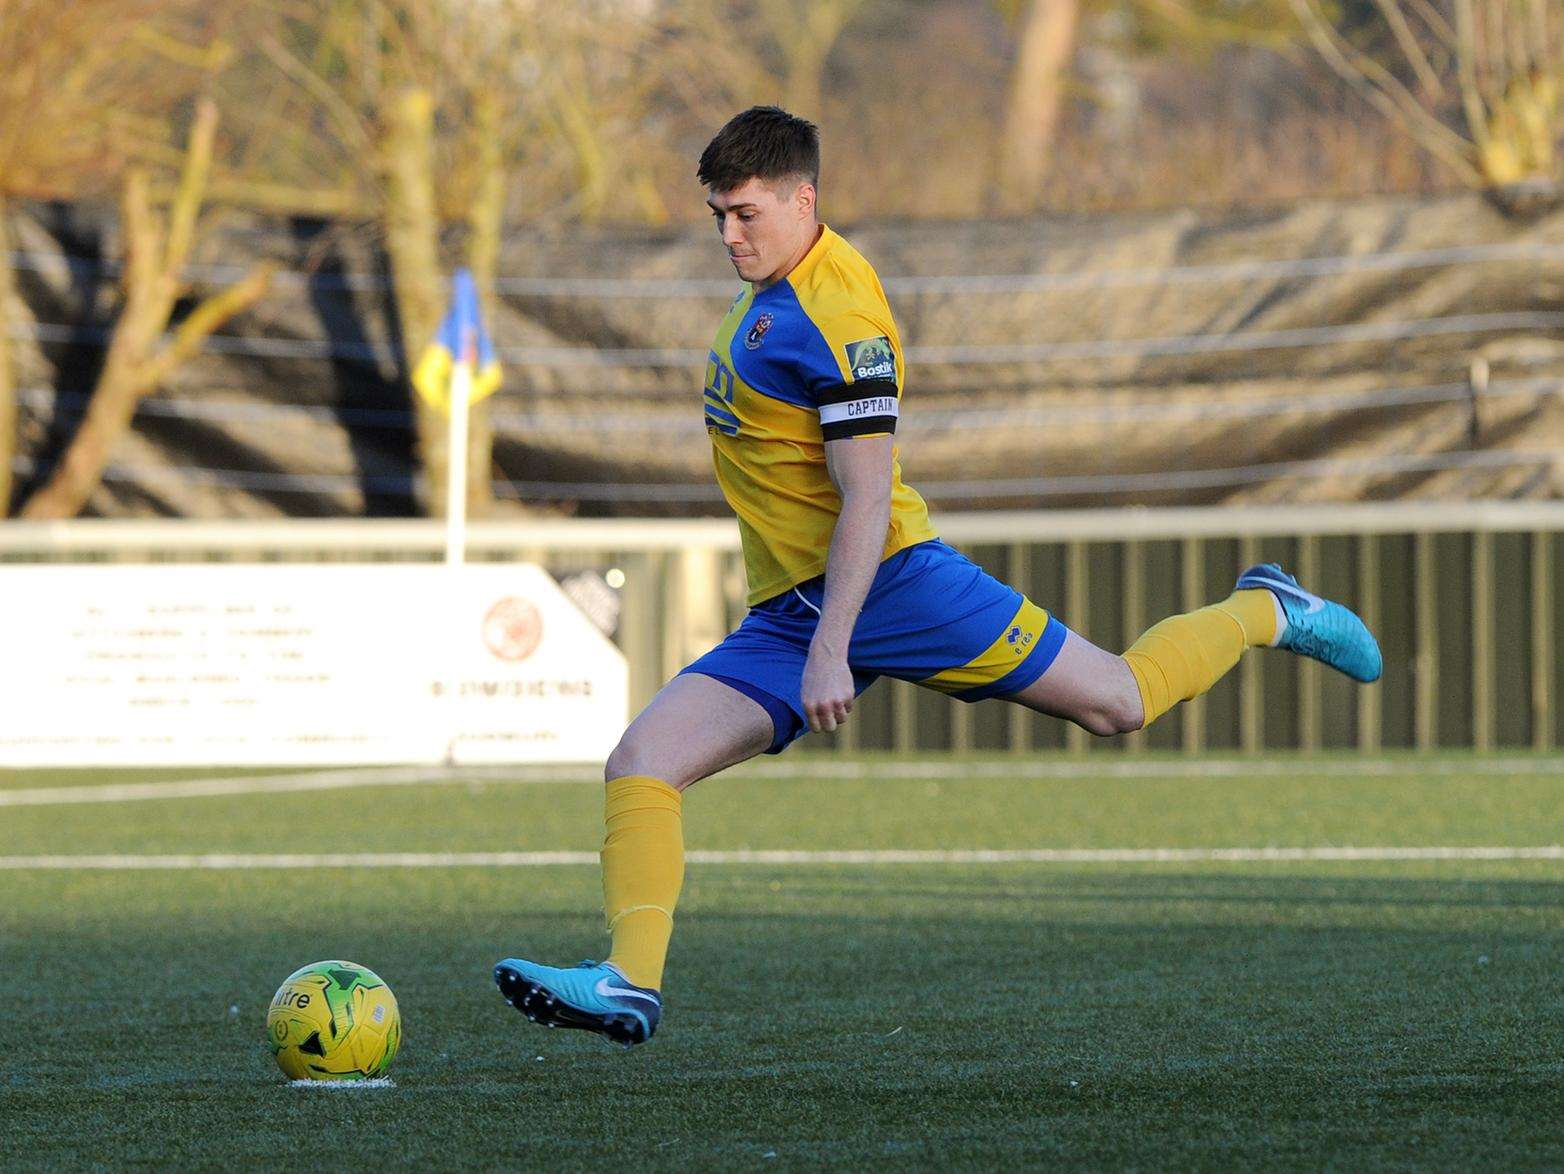 CAPTAIN'S JOB: Joe Whight took the highly pressured penalty to take the lead for AFC Sudbury (Picture: Mecha Morton)